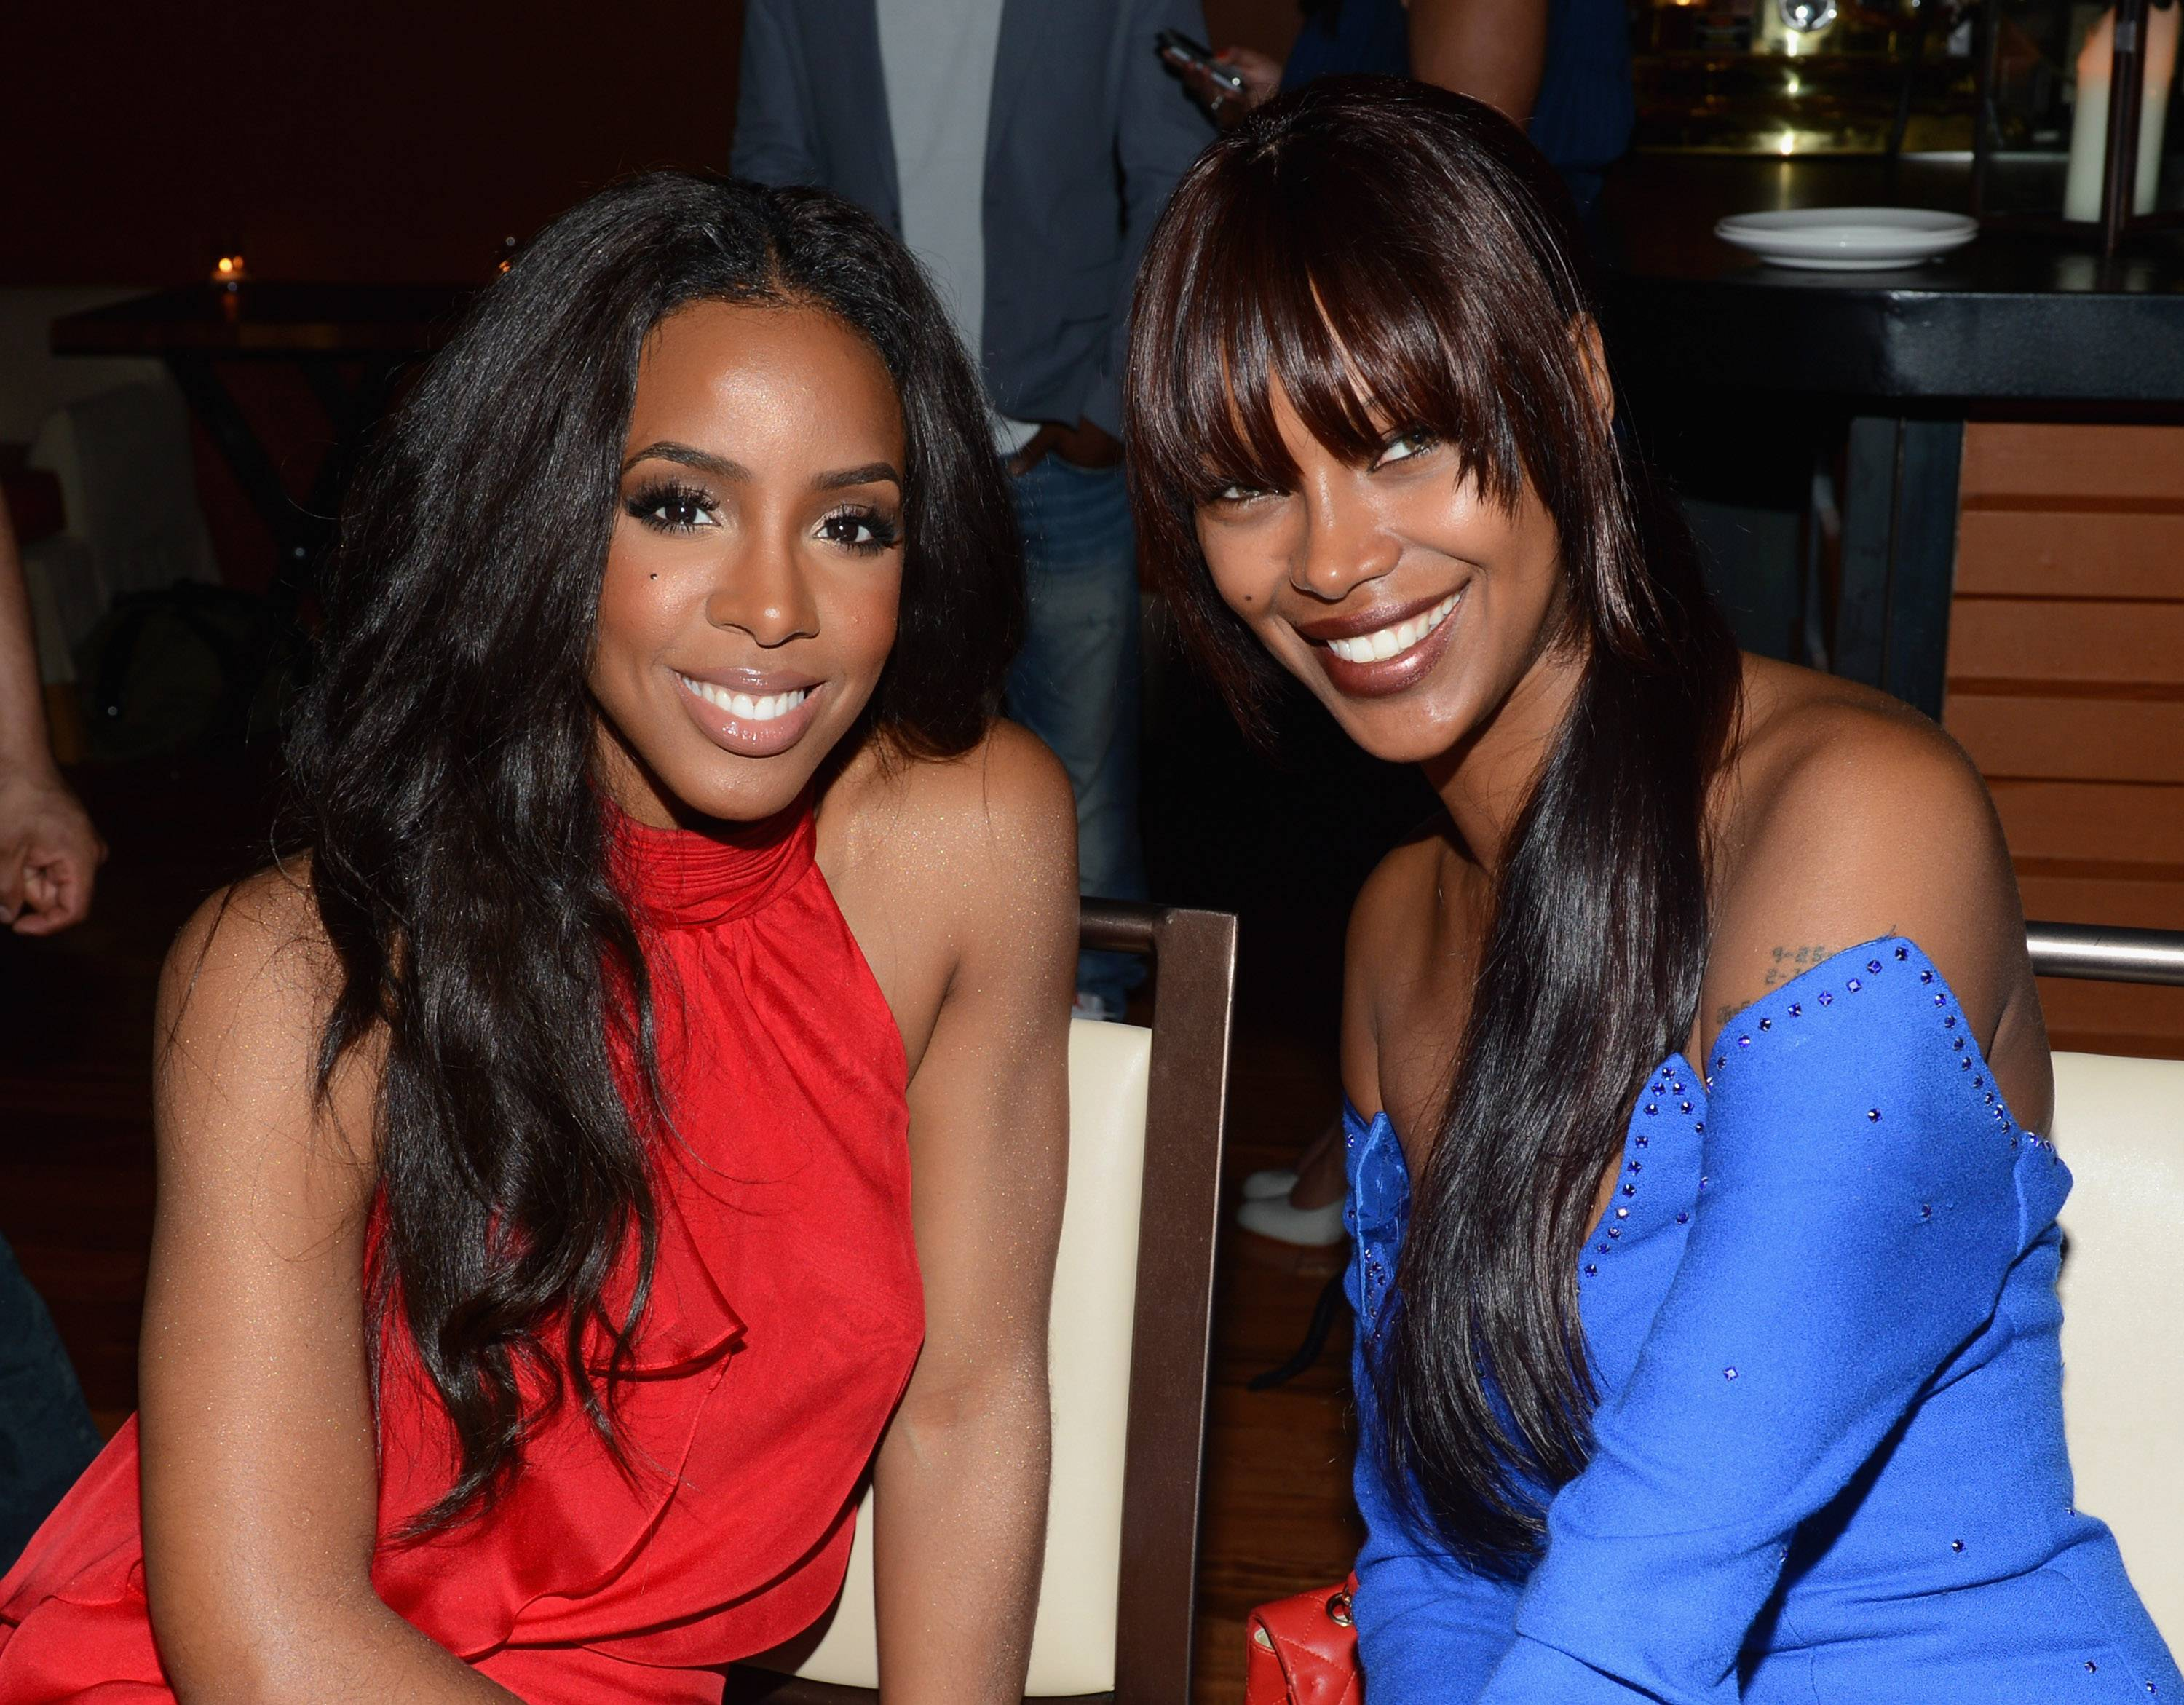 Kelly Rowland and model Jessica White